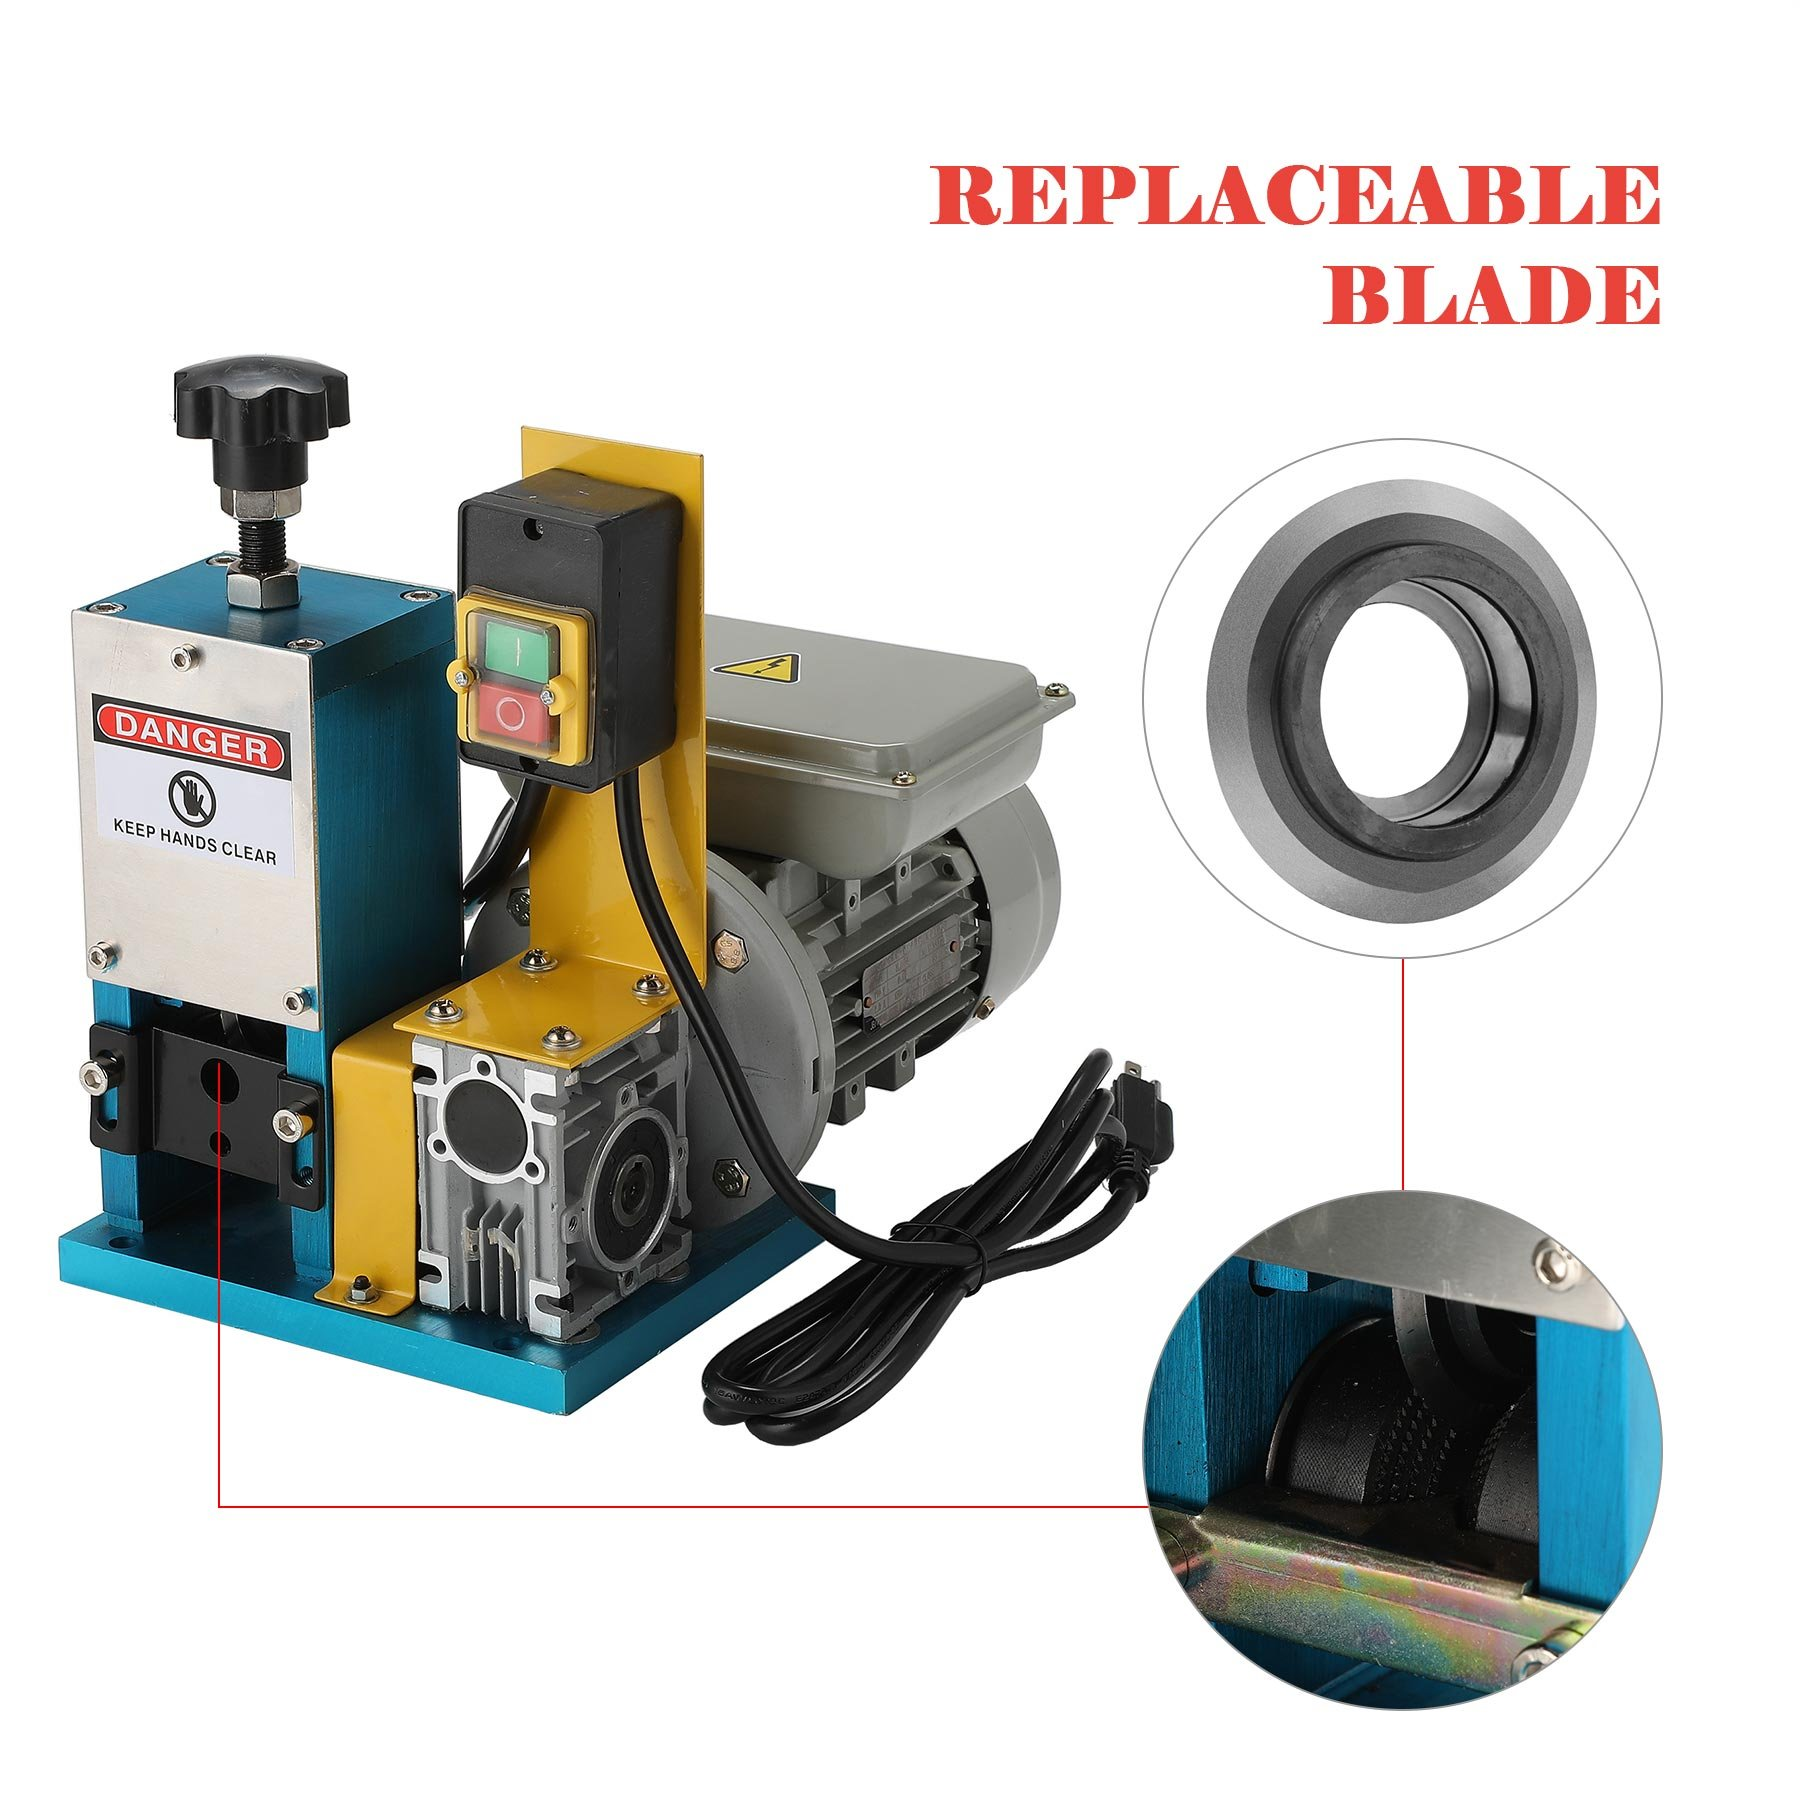 CO-Z Automatic Electric Wire Stripping Machine Portable Scrap Cable Stripper for Scrap Copper Recycling, including Extra Blade